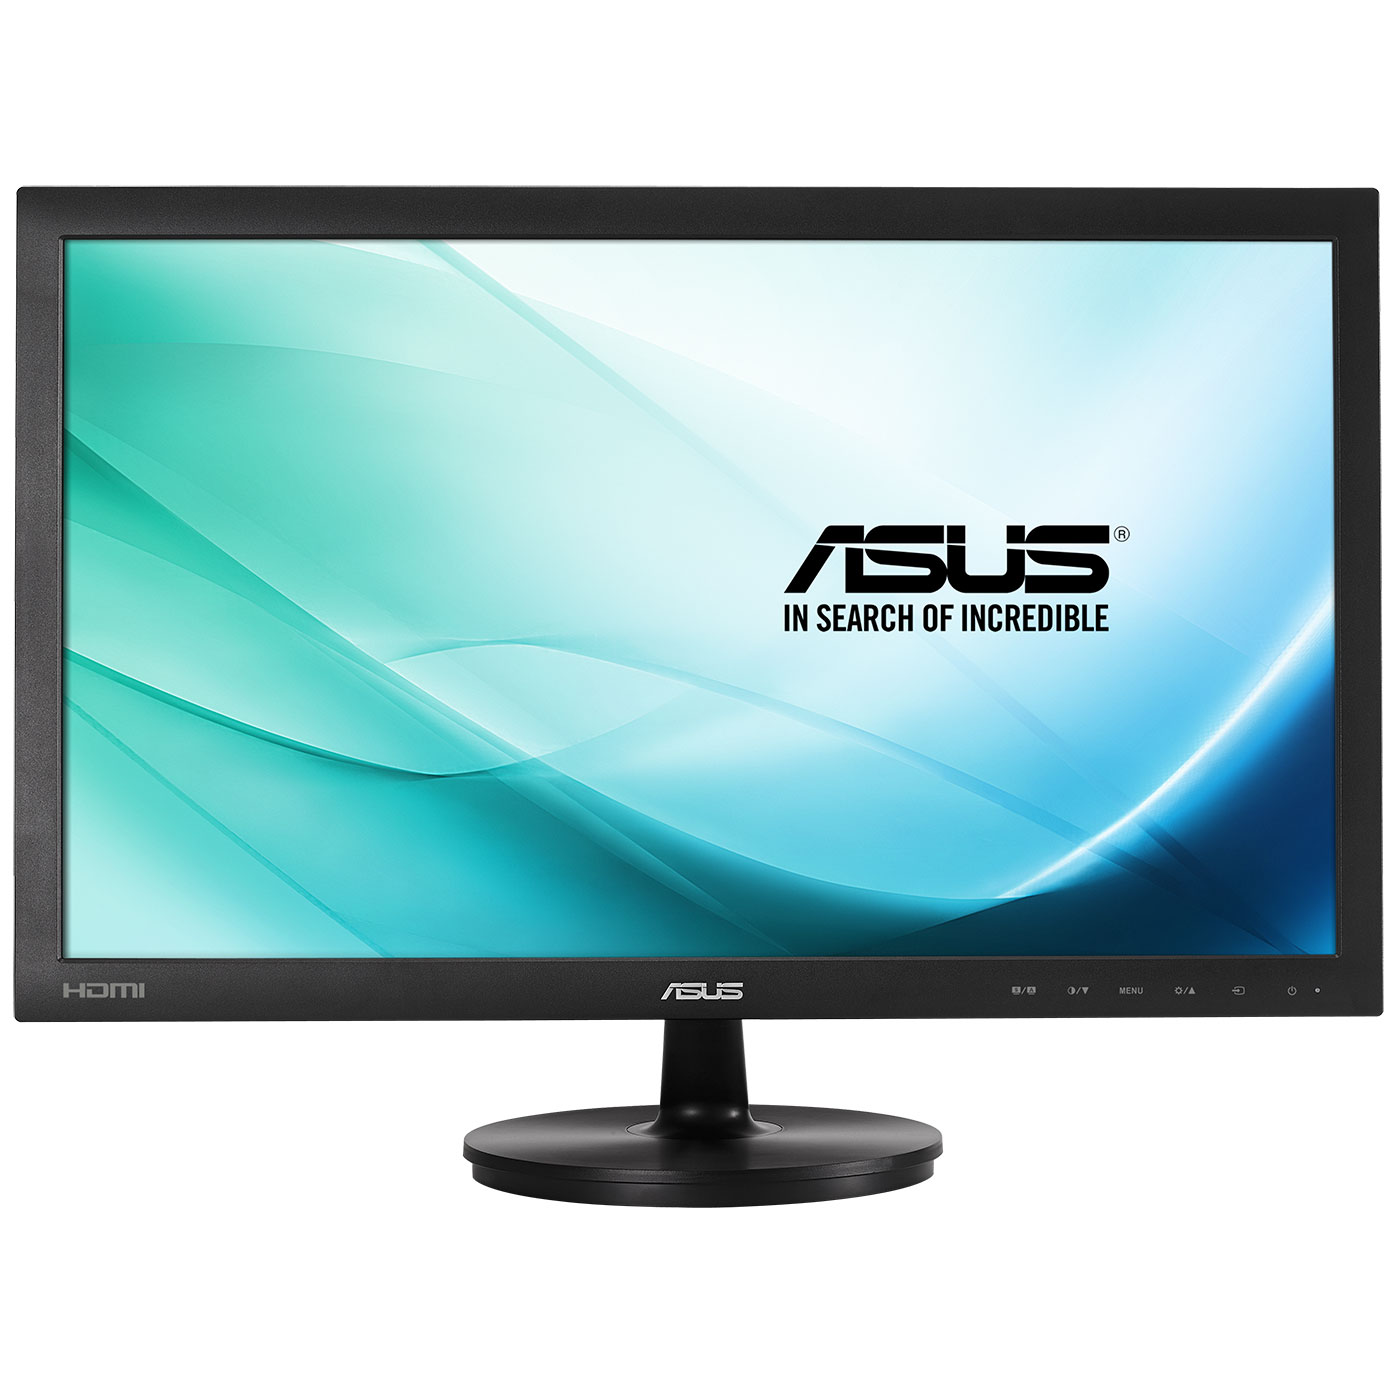 asus 23 6 led vs247hr ecran pc asus sur. Black Bedroom Furniture Sets. Home Design Ideas